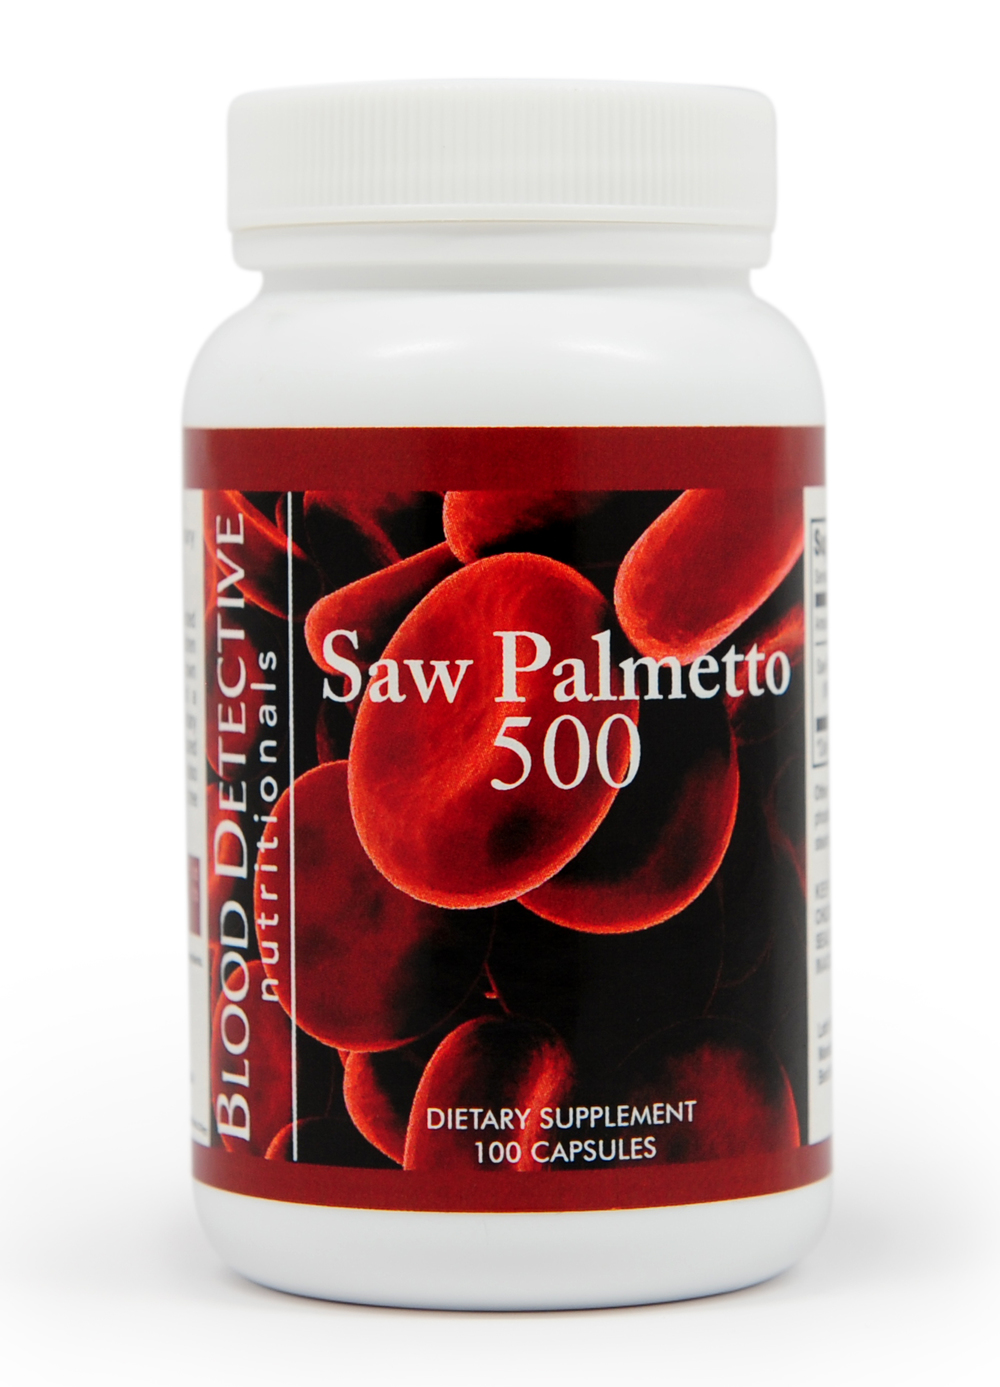 THIS PRODUCT NOW CALLED SAW PALMETTO SYNERGY